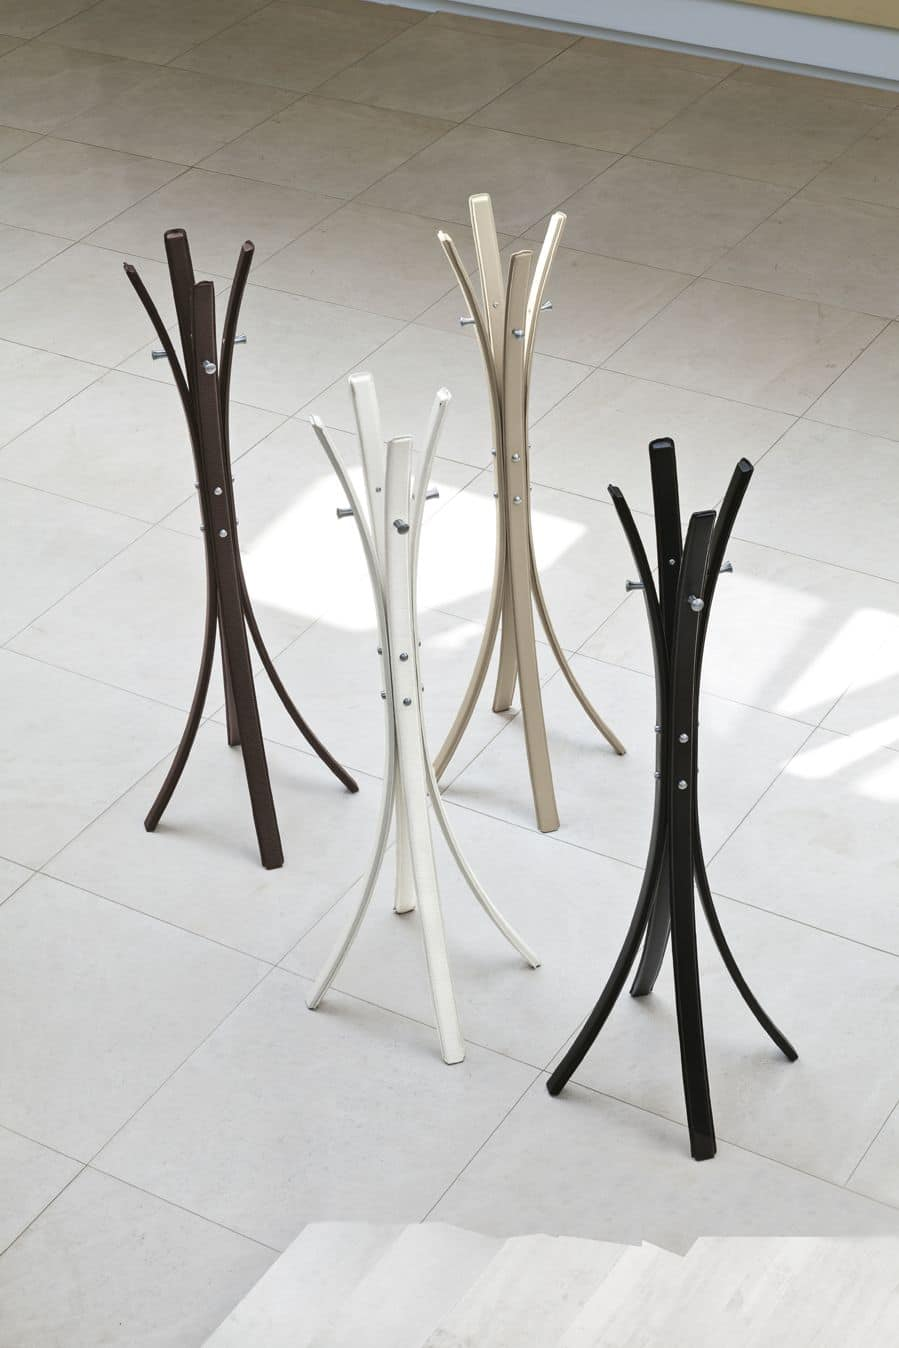 STICK FA600, Hangers suitable for modern houses and bars